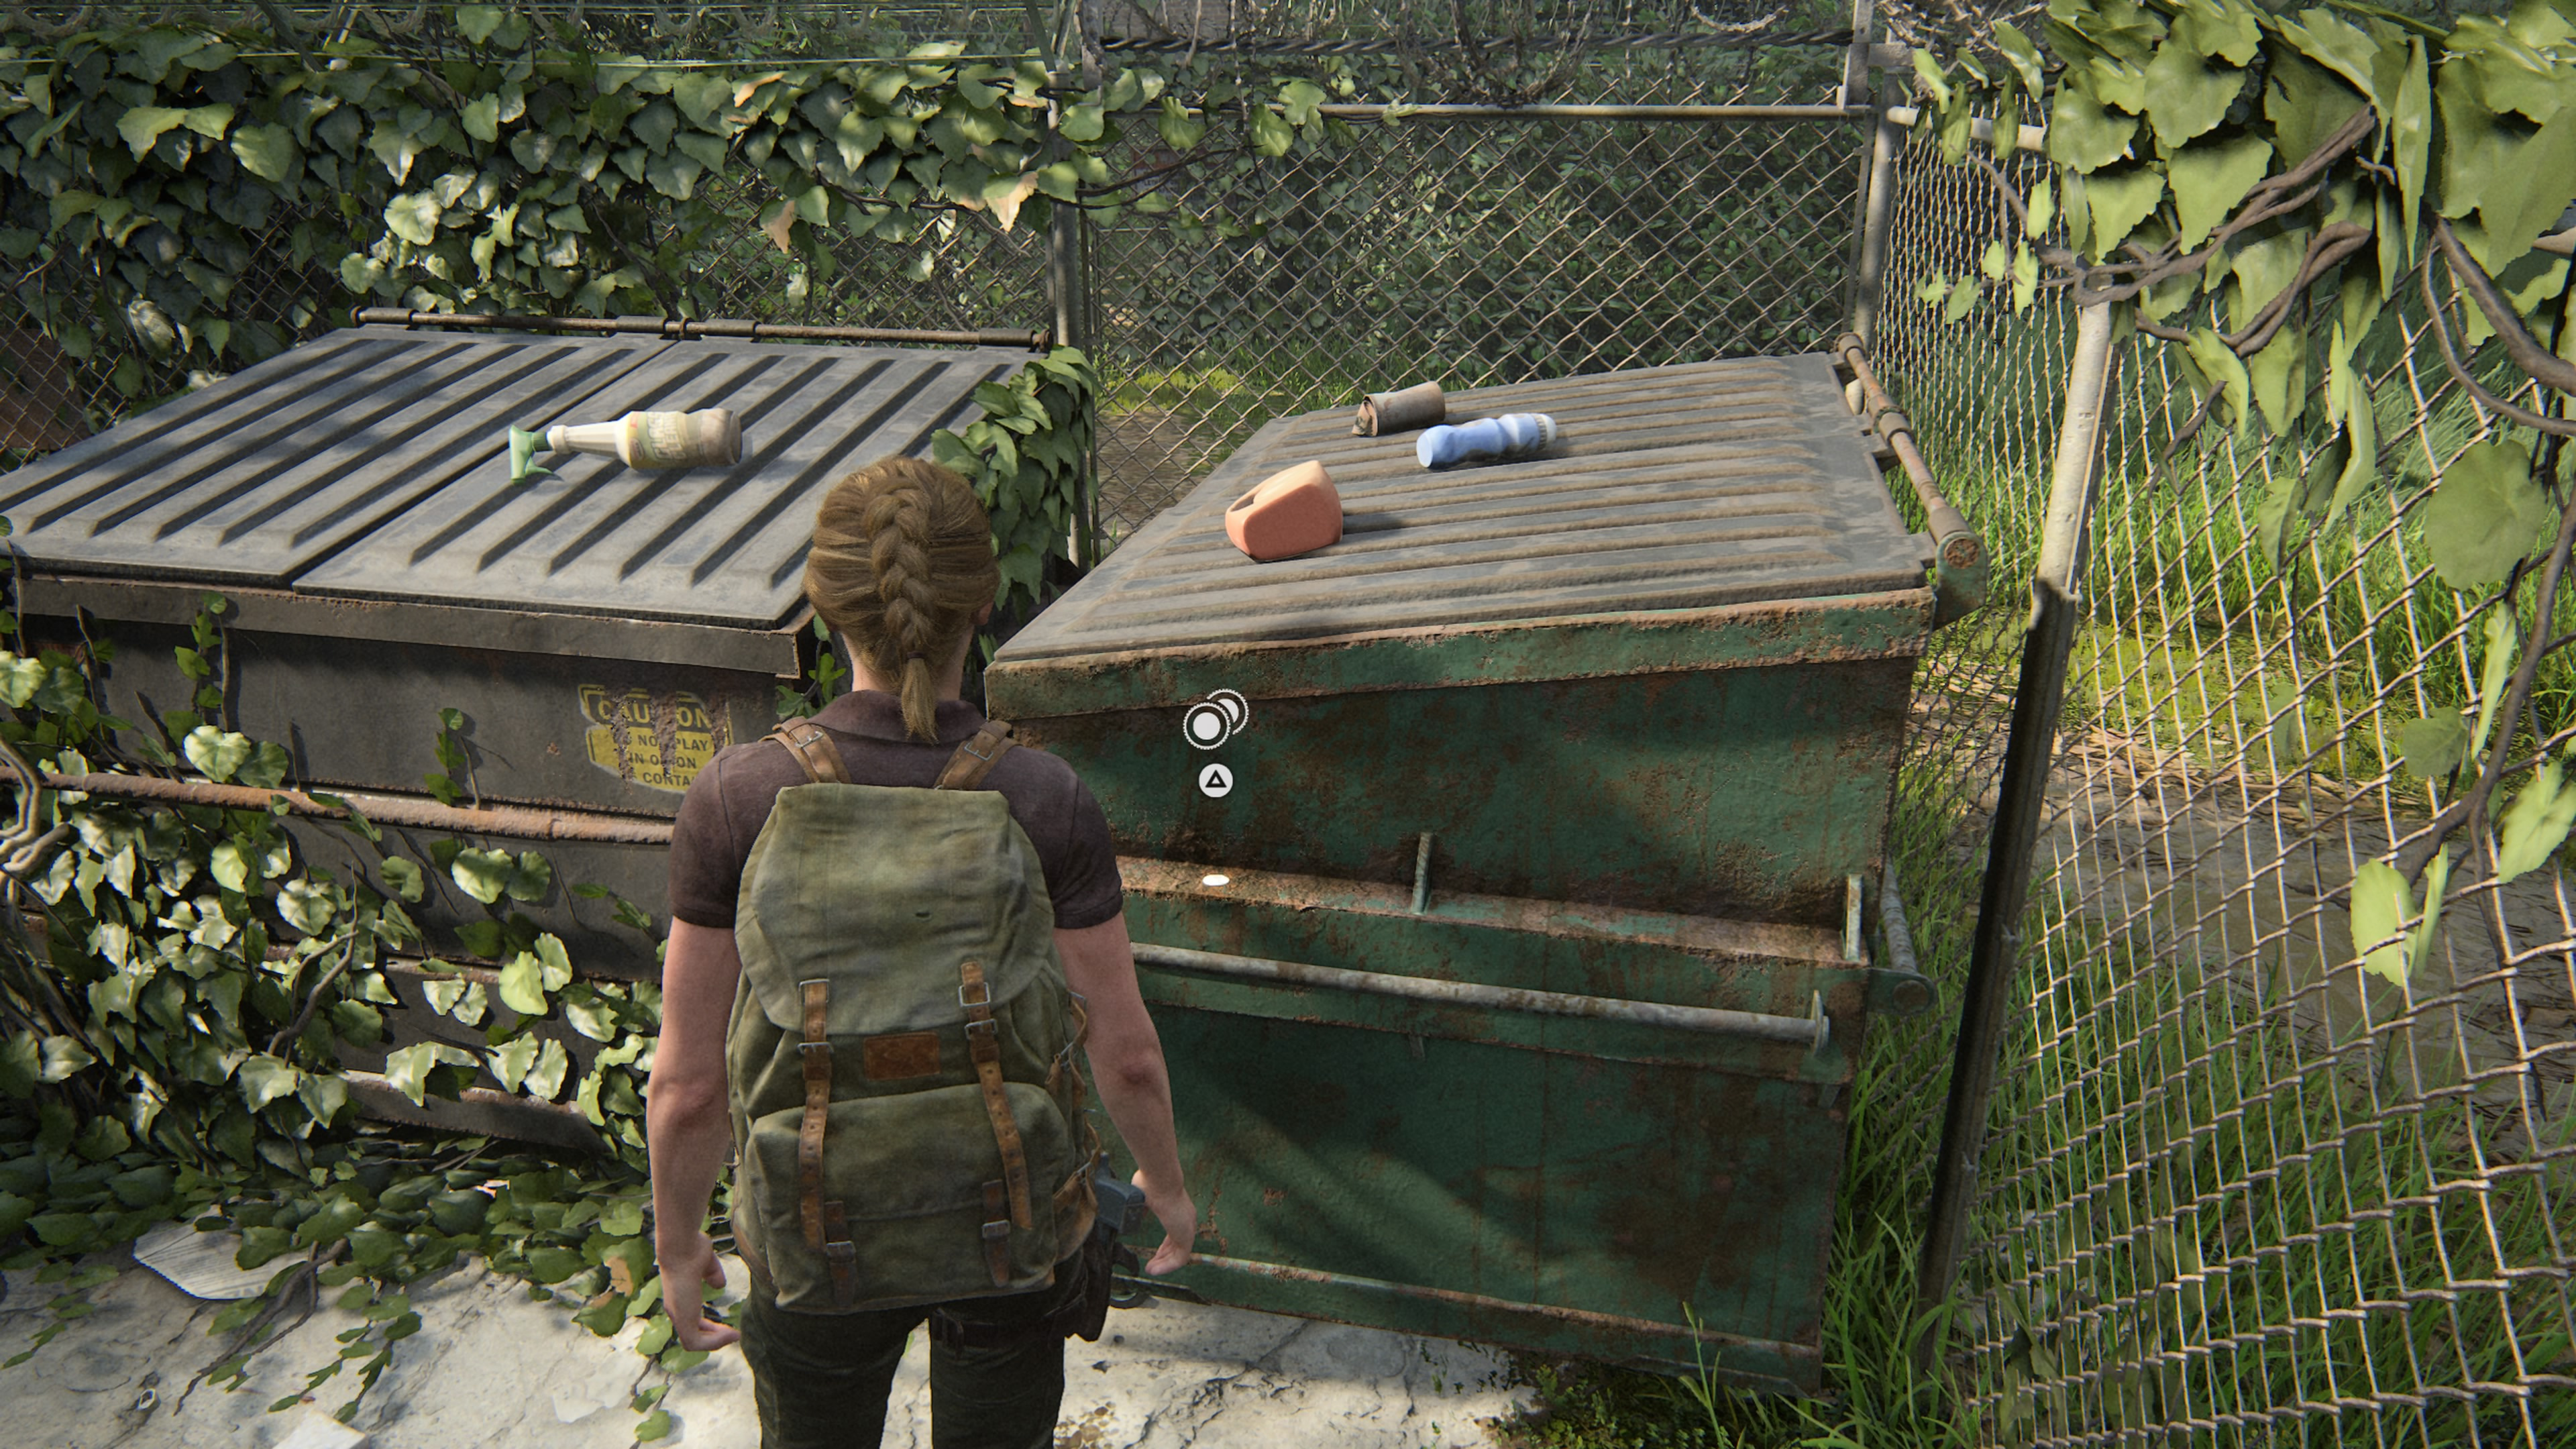 the last of us 2 tracking lesson collectibles guide coin 1.original - The Last of Us Parte 2 - Guida alle monete collezionabili